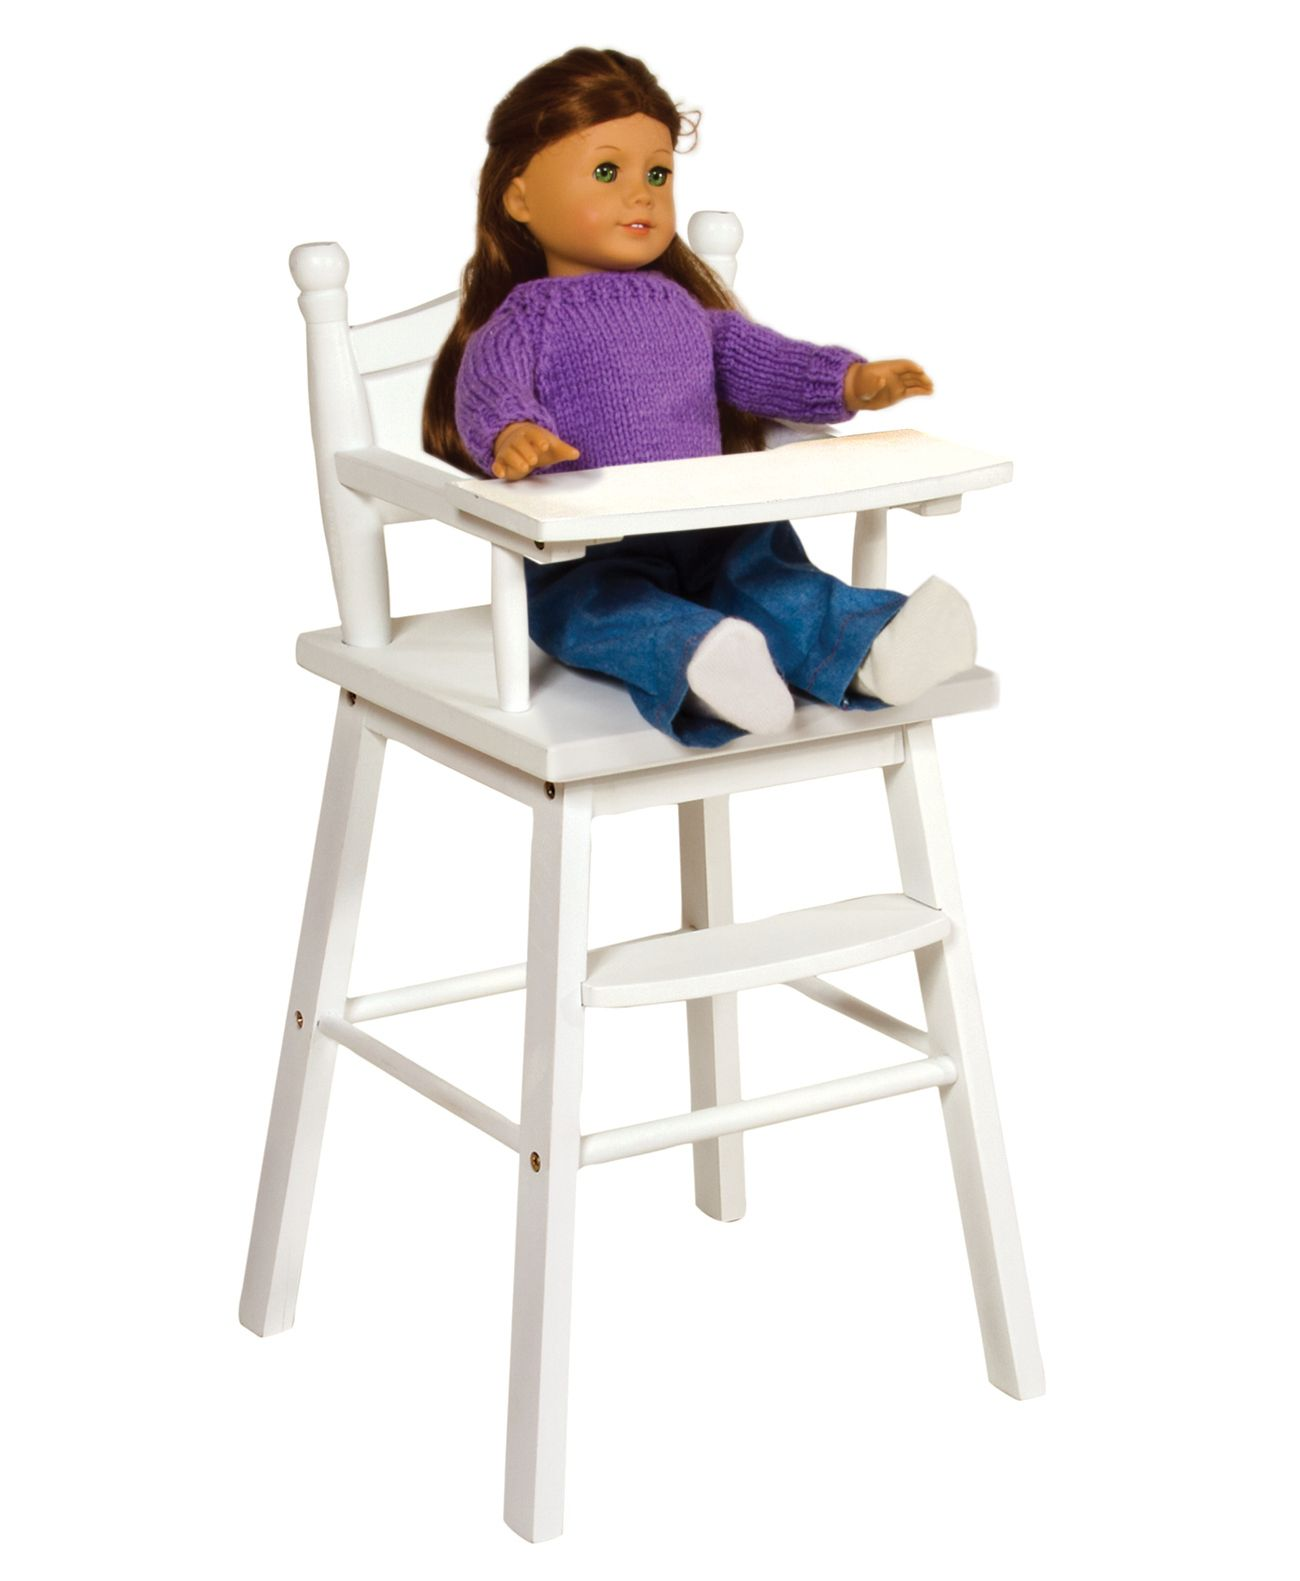 high chair with accessories soccer ball bean bag guidecraft doll white toys and games dolls